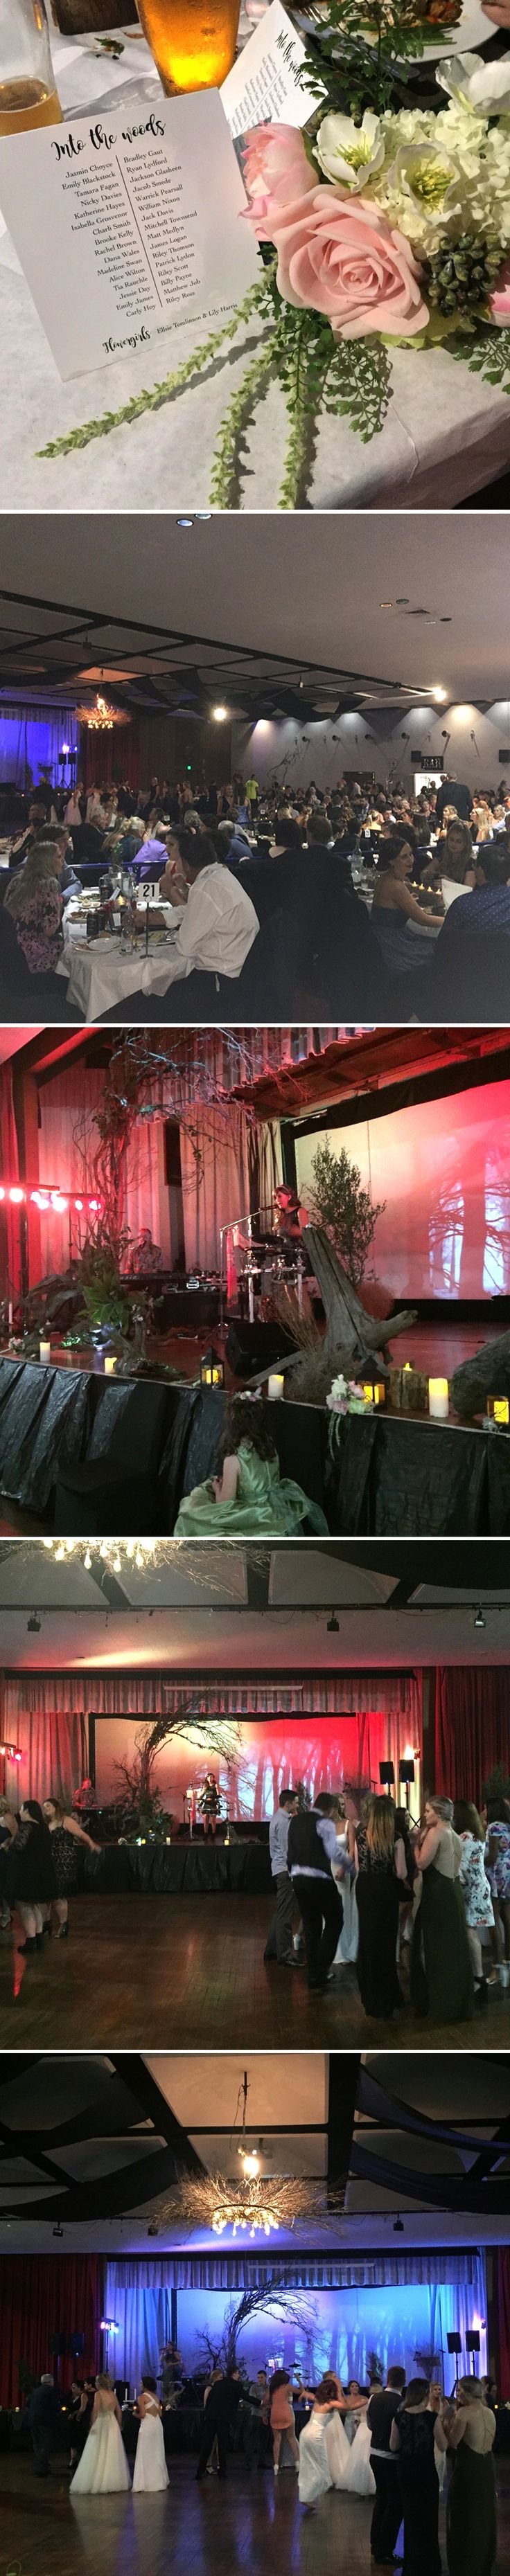 Catholic Debutante Ball Last Friday we catered for the Catholic Deb Ball in Parkes. Congratulations to all the Debs. #bigcatering #catering #debball #events #debutante #eatyourgreens #eyg2016